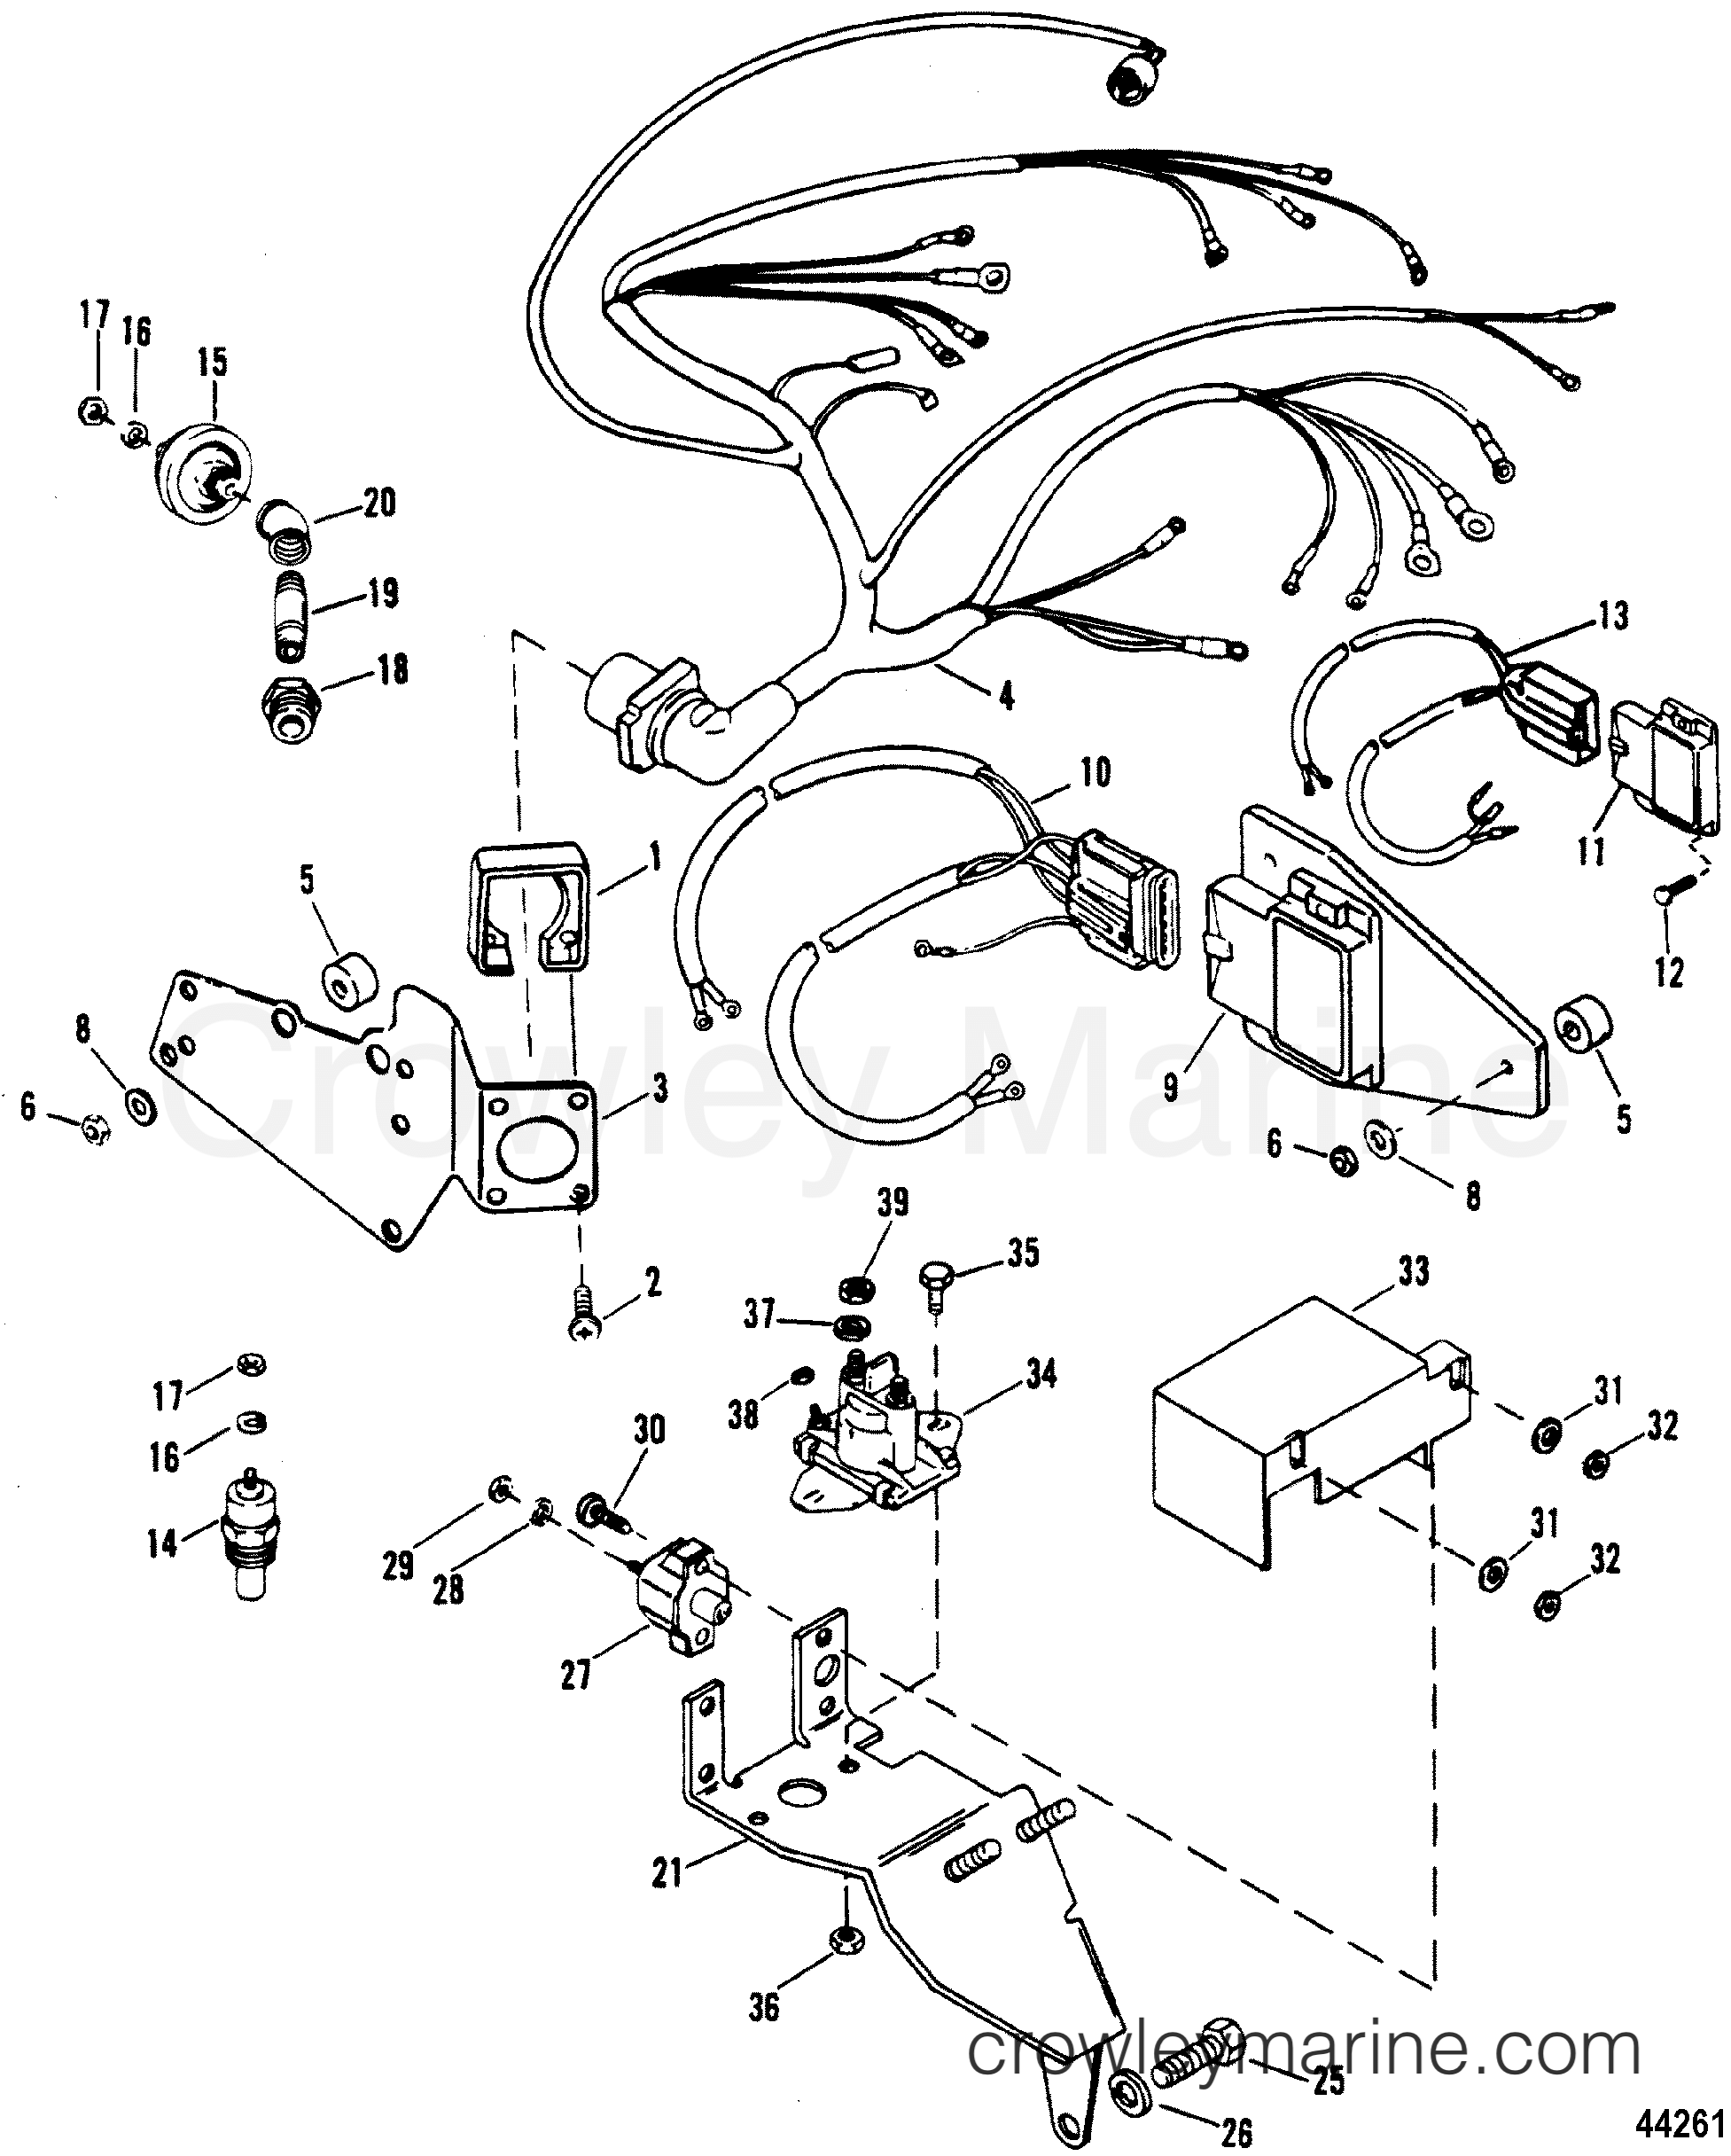 RQhFRzbF wiring harness & electrical components(thunderbolt iv ign ) 1992 mercruiser thunderbolt iv ignition module wiring diagram at gsmx.co